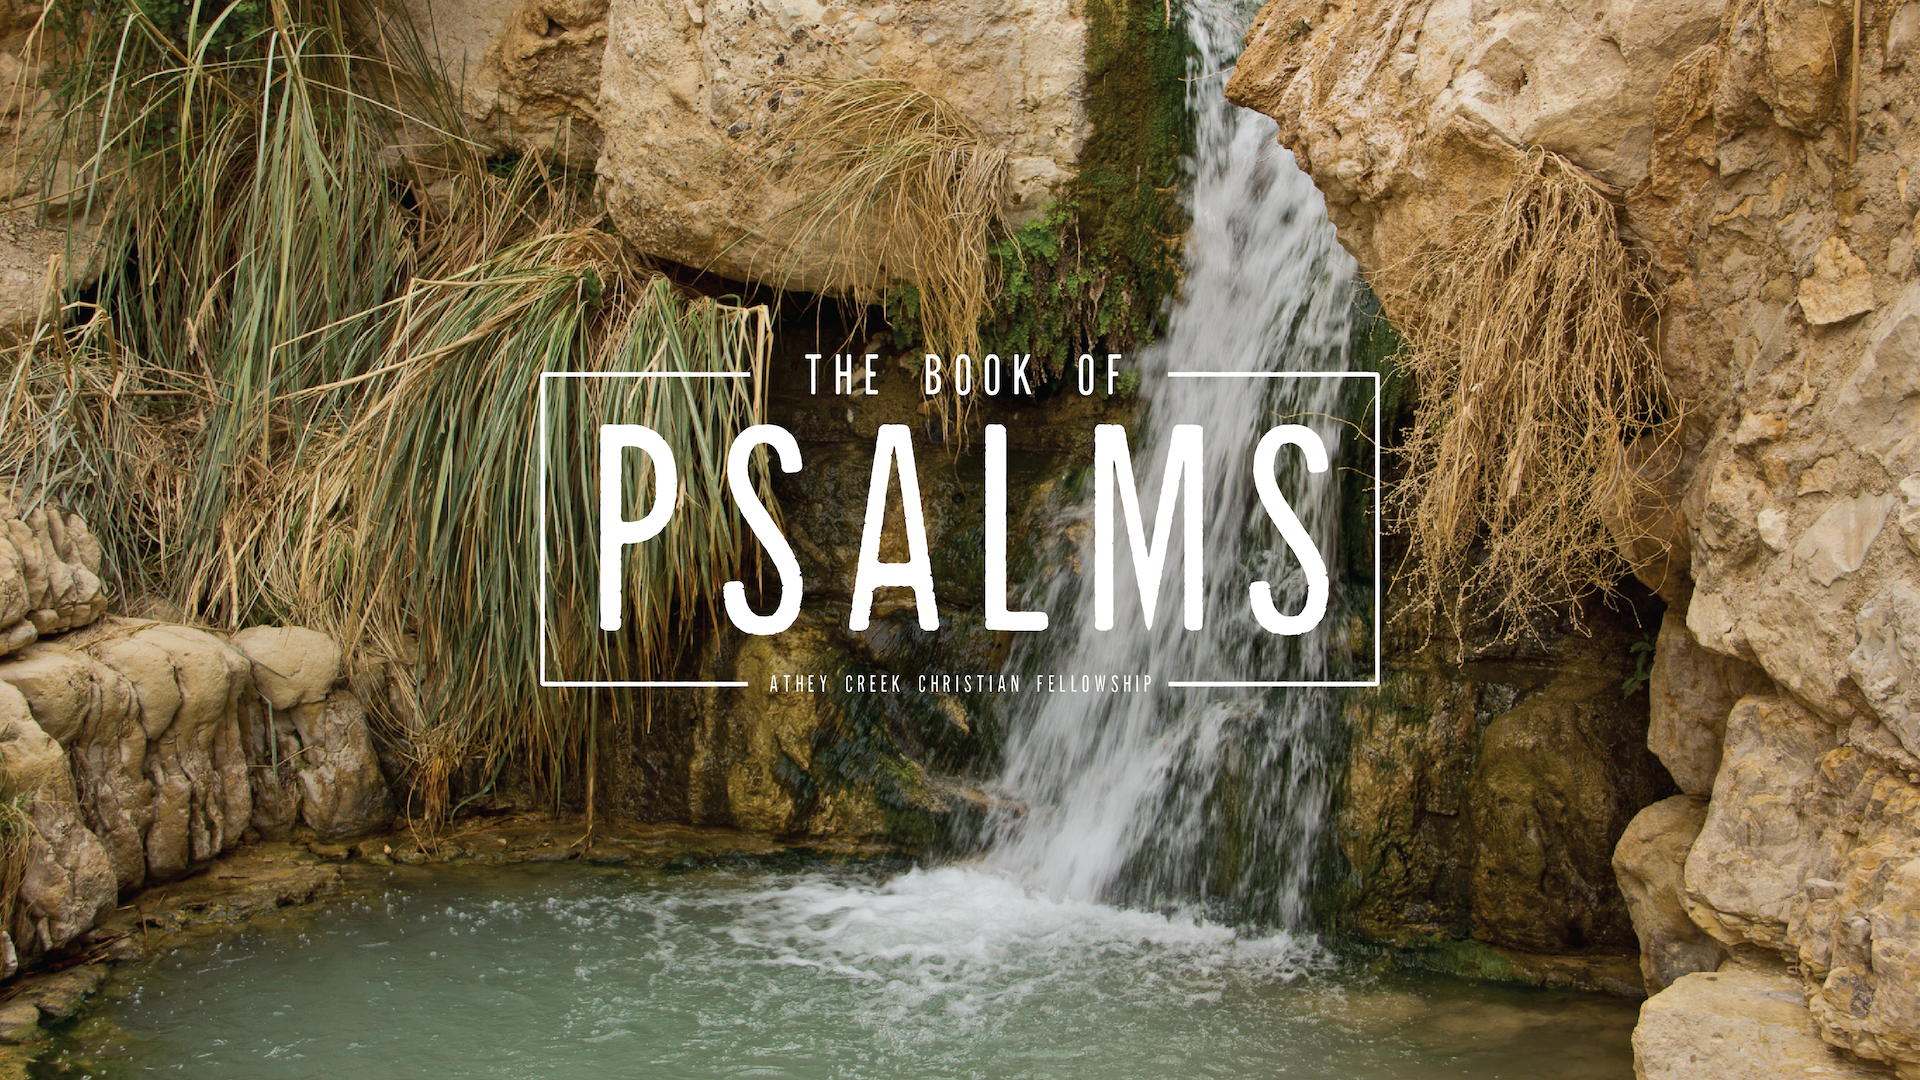 Poster forThrough the Bible (Psalms 49)